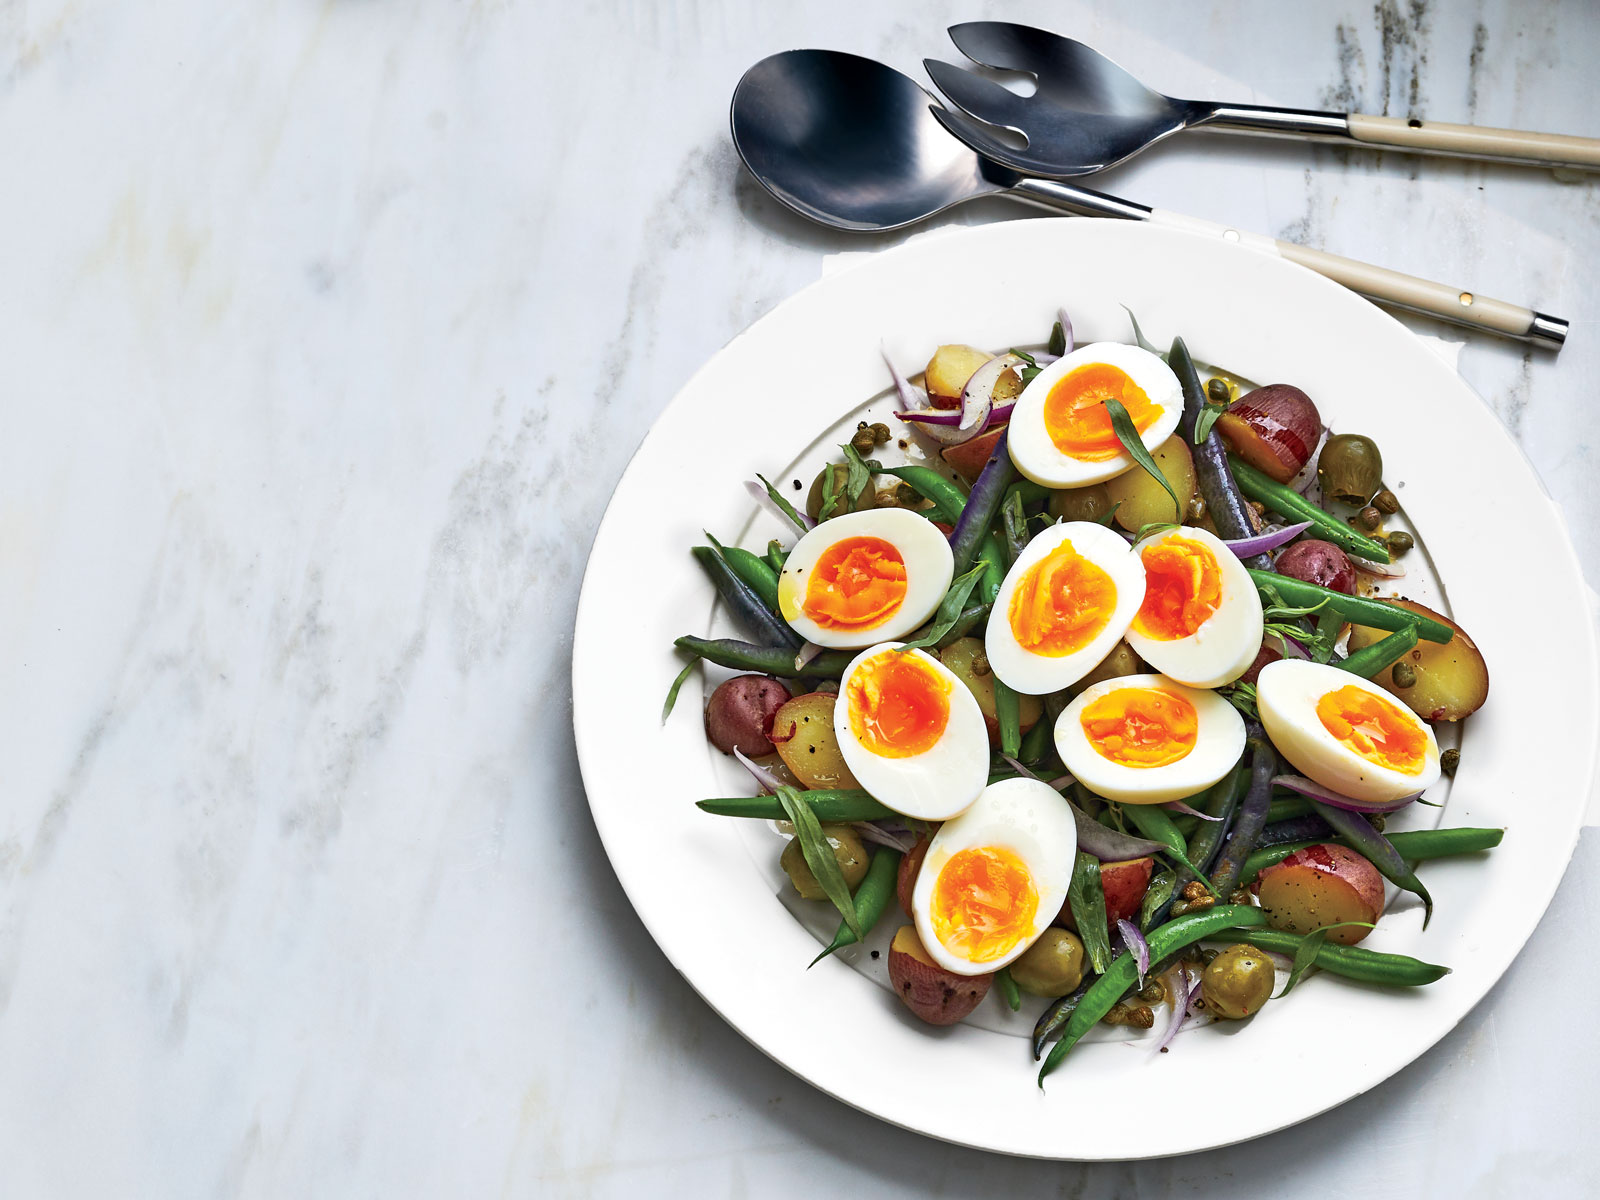 Wax Bean Salad with Potatoes Capers and Eggs